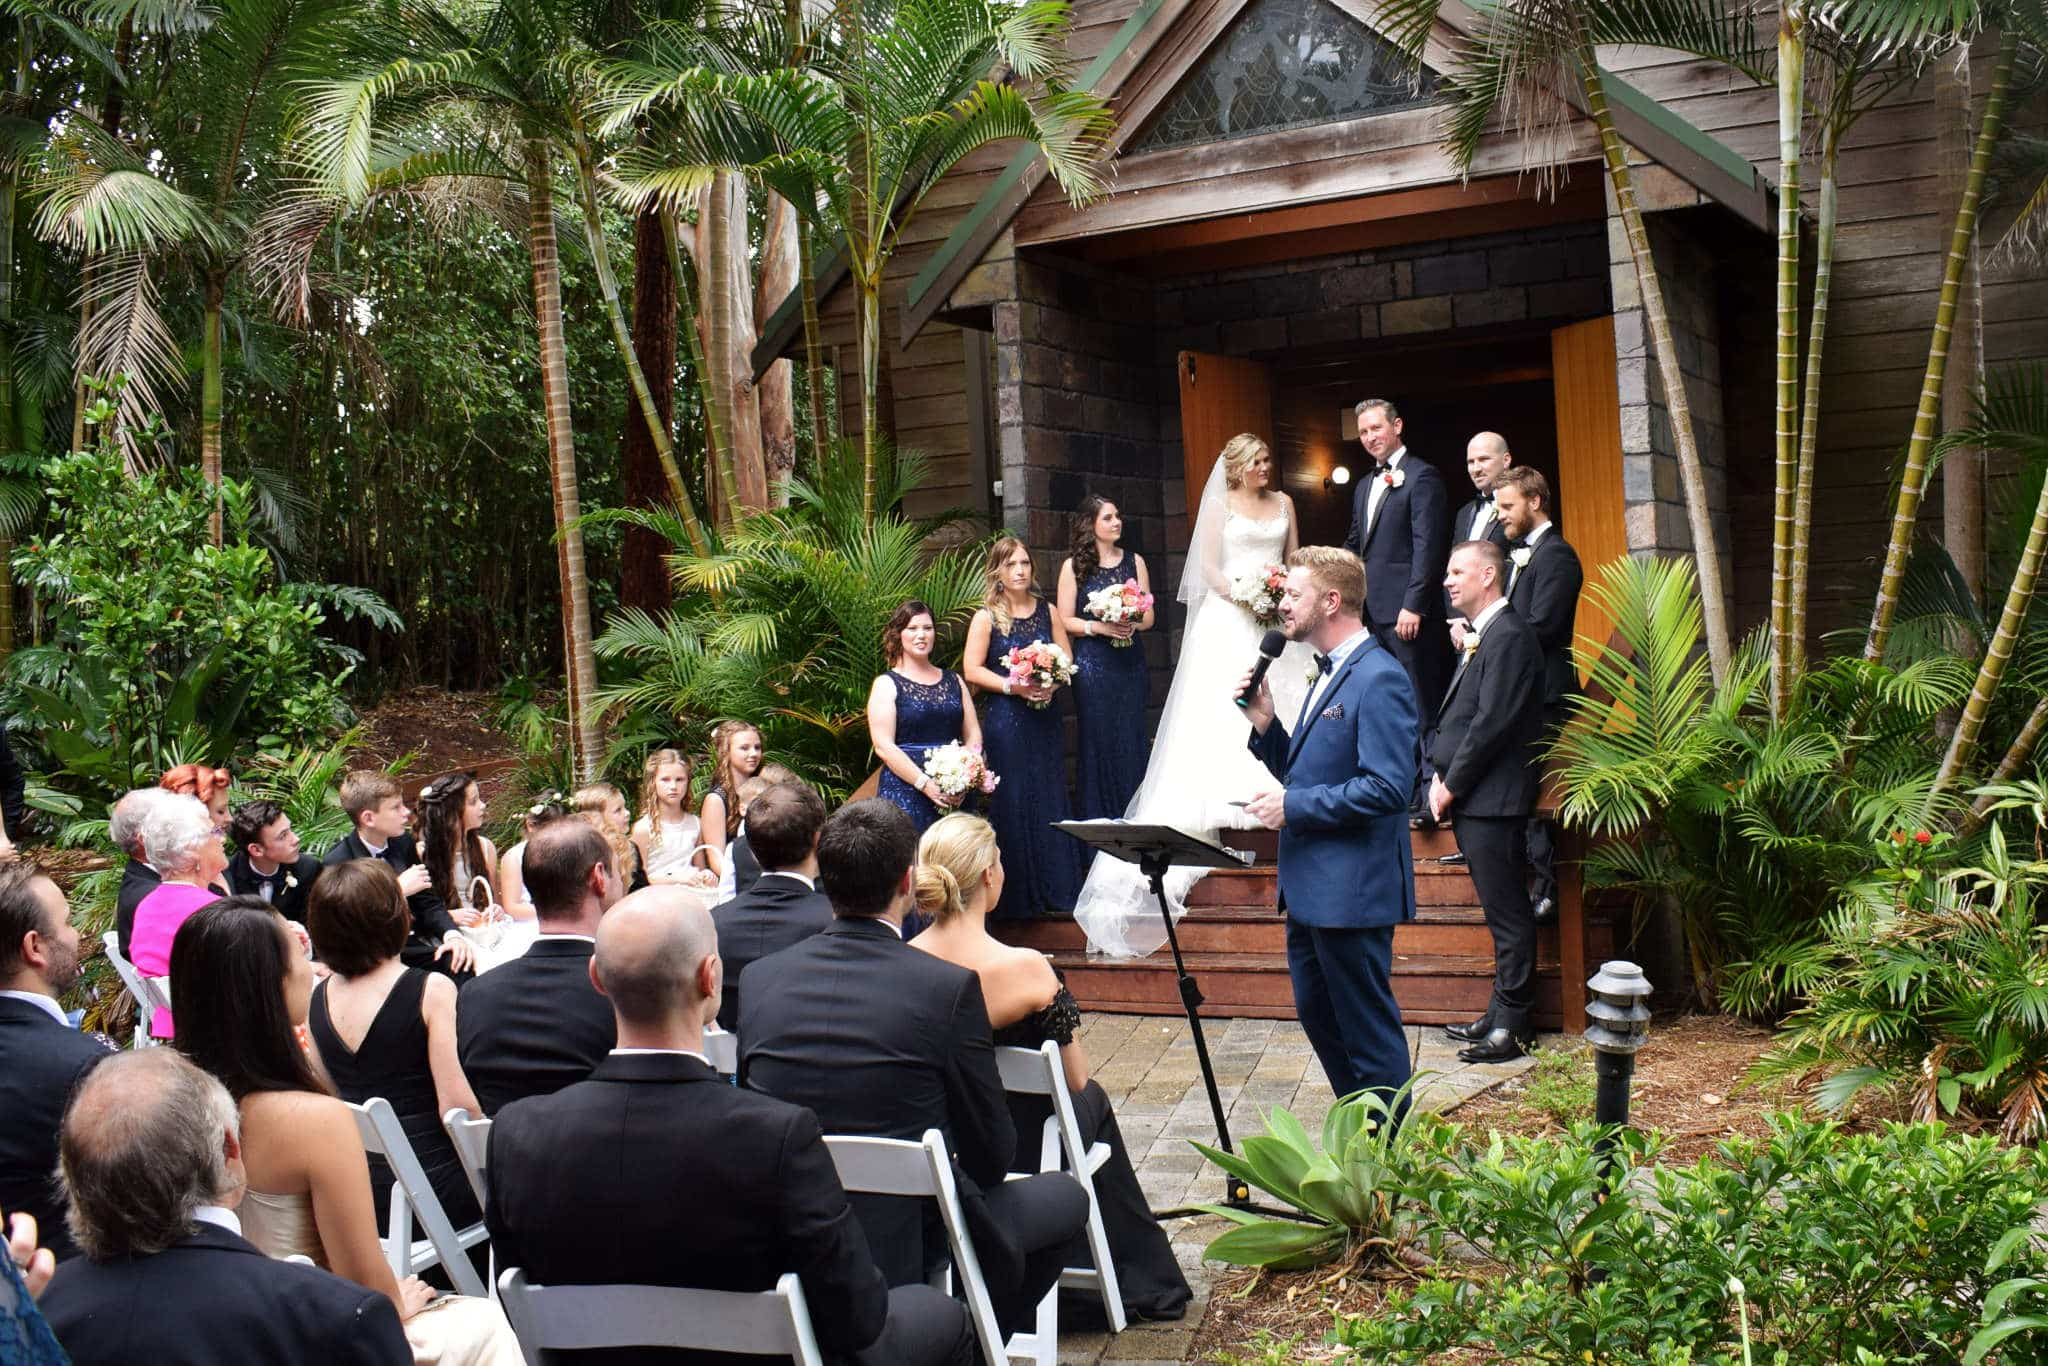 Dan and Kristie Wedding - Sydney Marriage Celebrant Stephen Lee